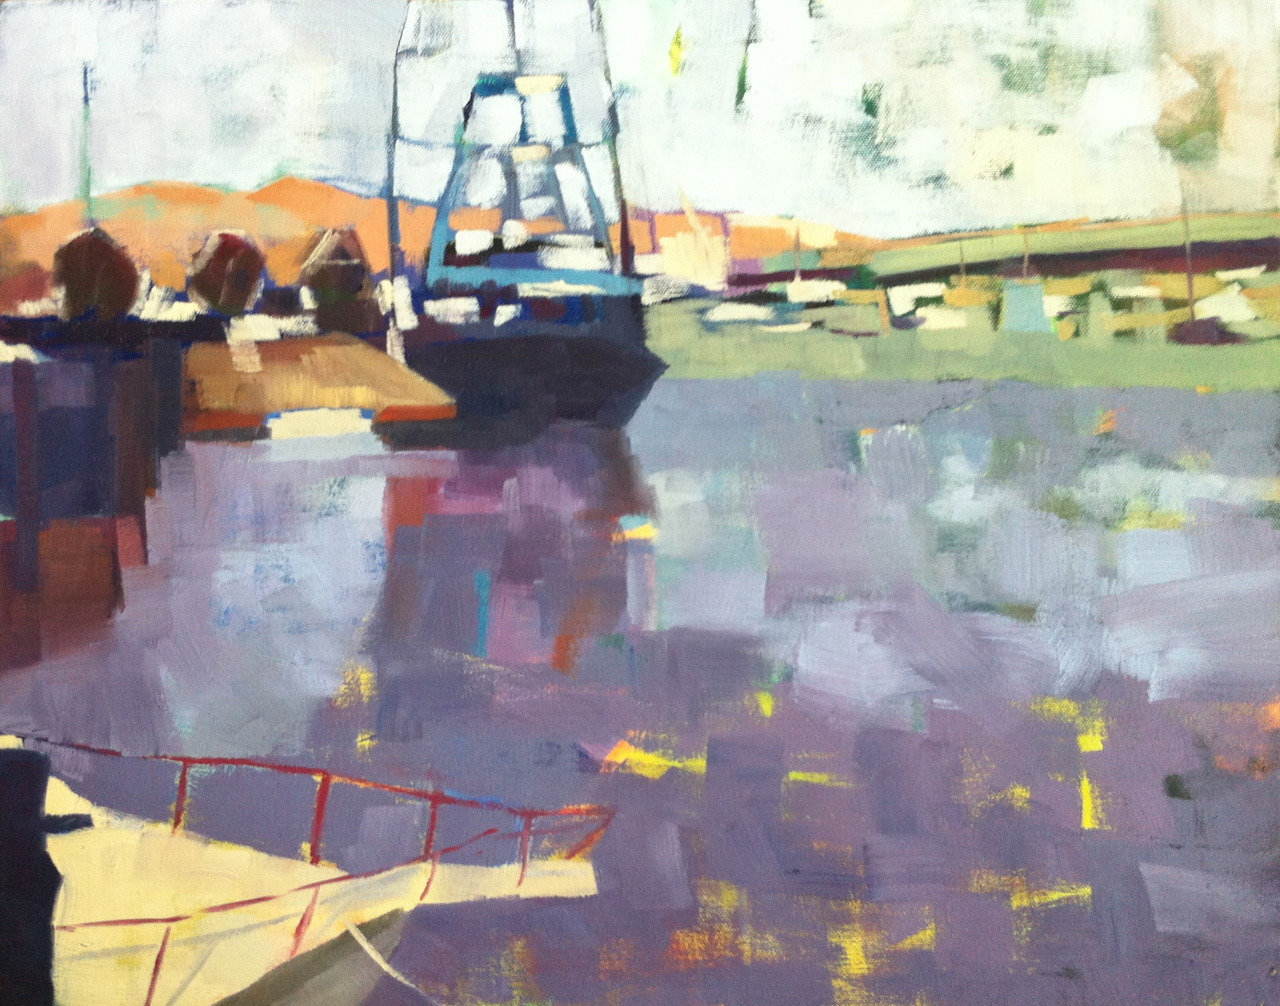 """Newburyport Harbor 16"""" x 20"""" oil on canvas.   Just dropped this off at MPG Home Design in Newburyport, MA. We spent a terrific day on the North Shore on Sunday. It is just so darned pretty on the New England coast this time of year."""